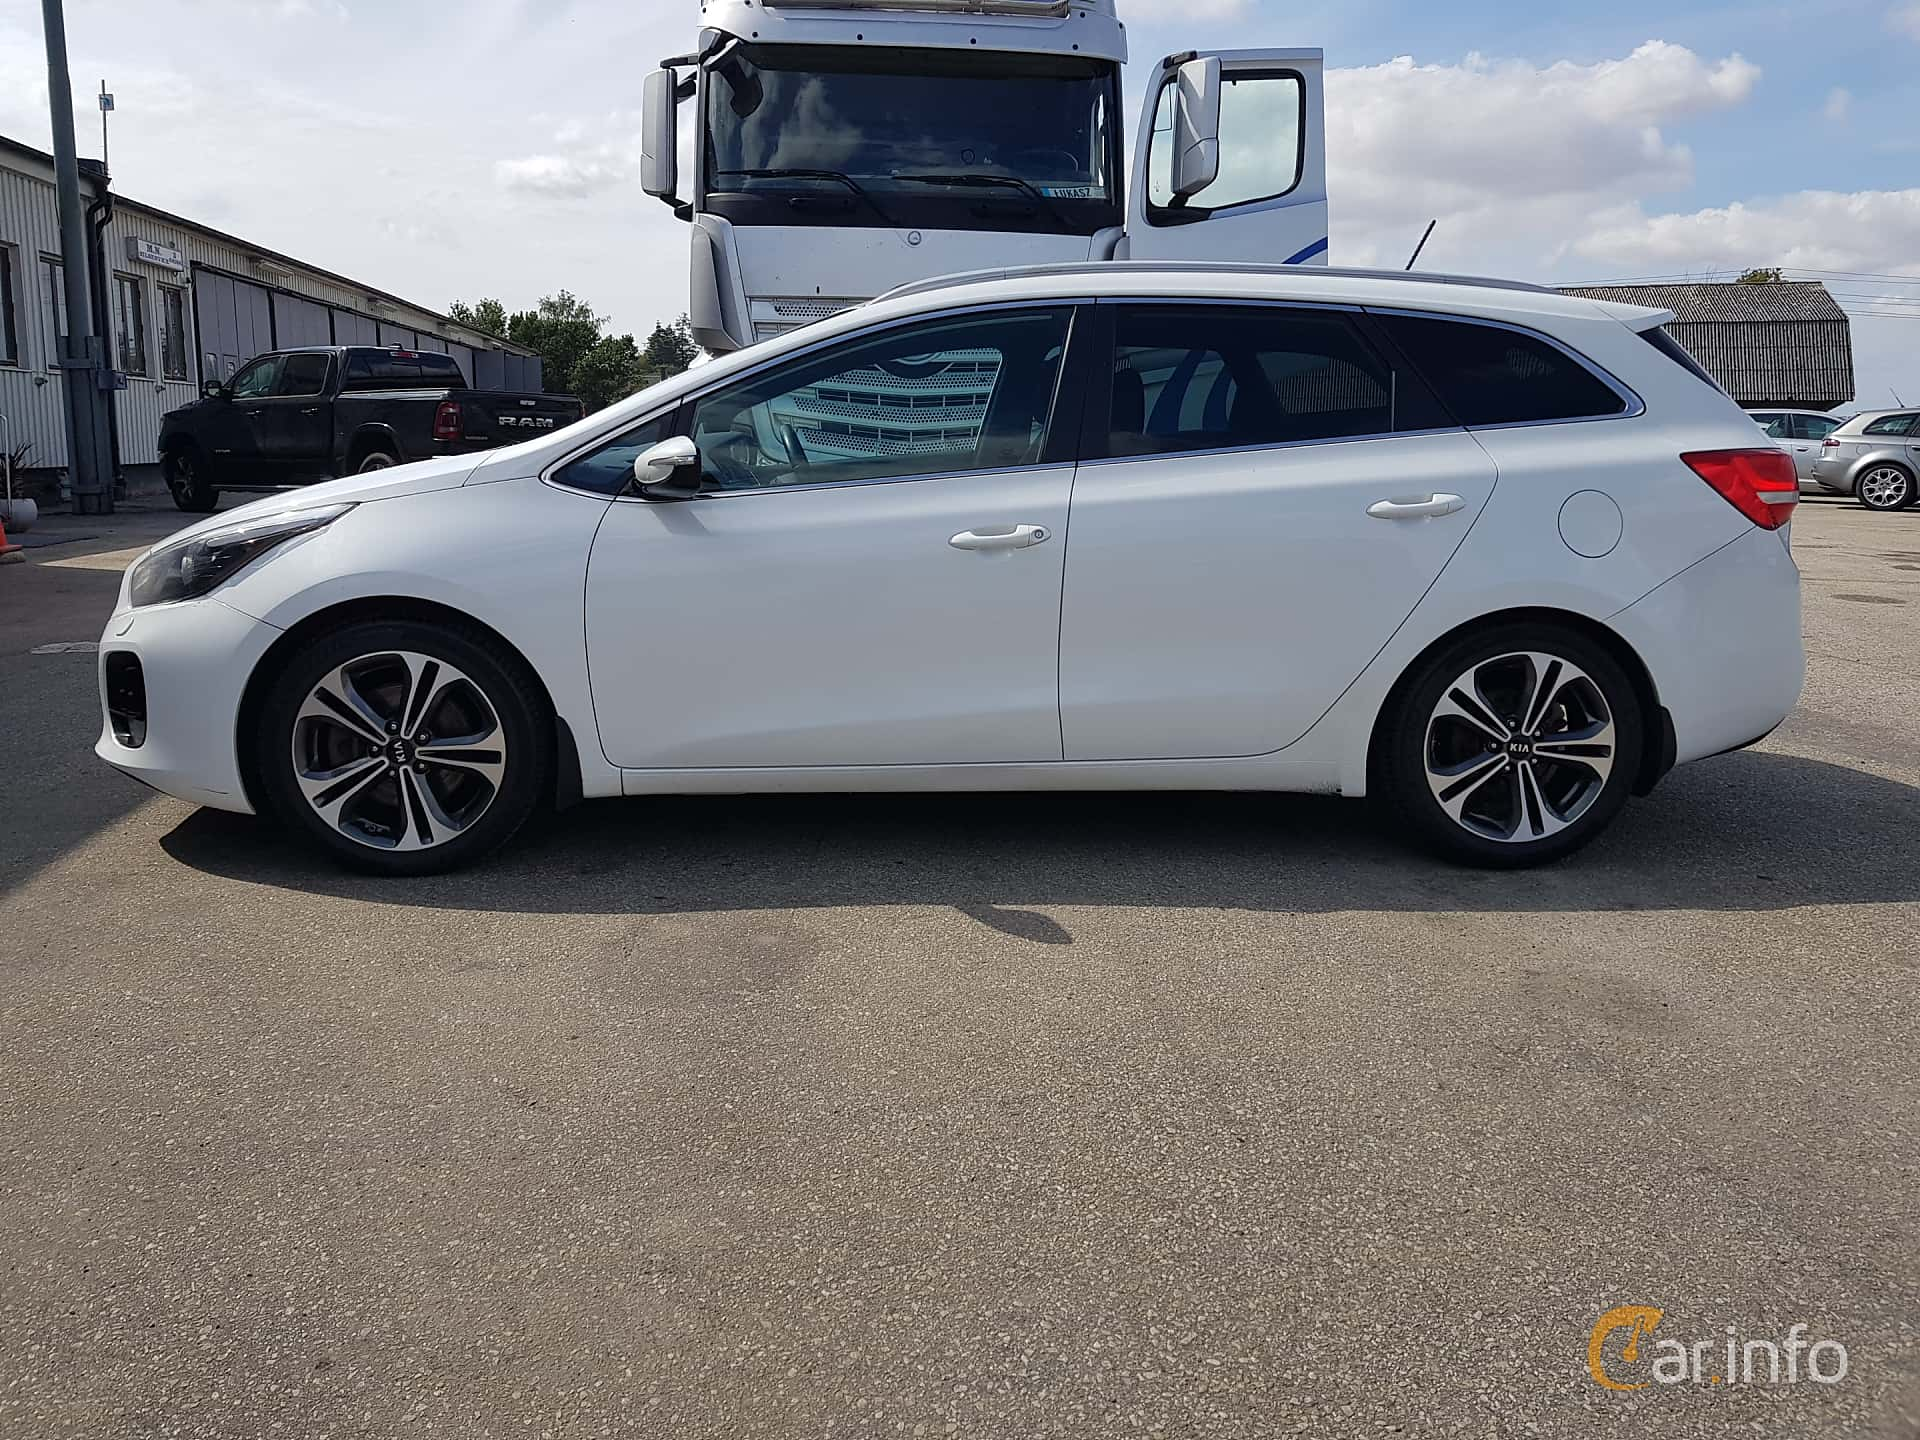 Kia cee'd_sw 1.6 CRDi Manual, 136hp, 2016